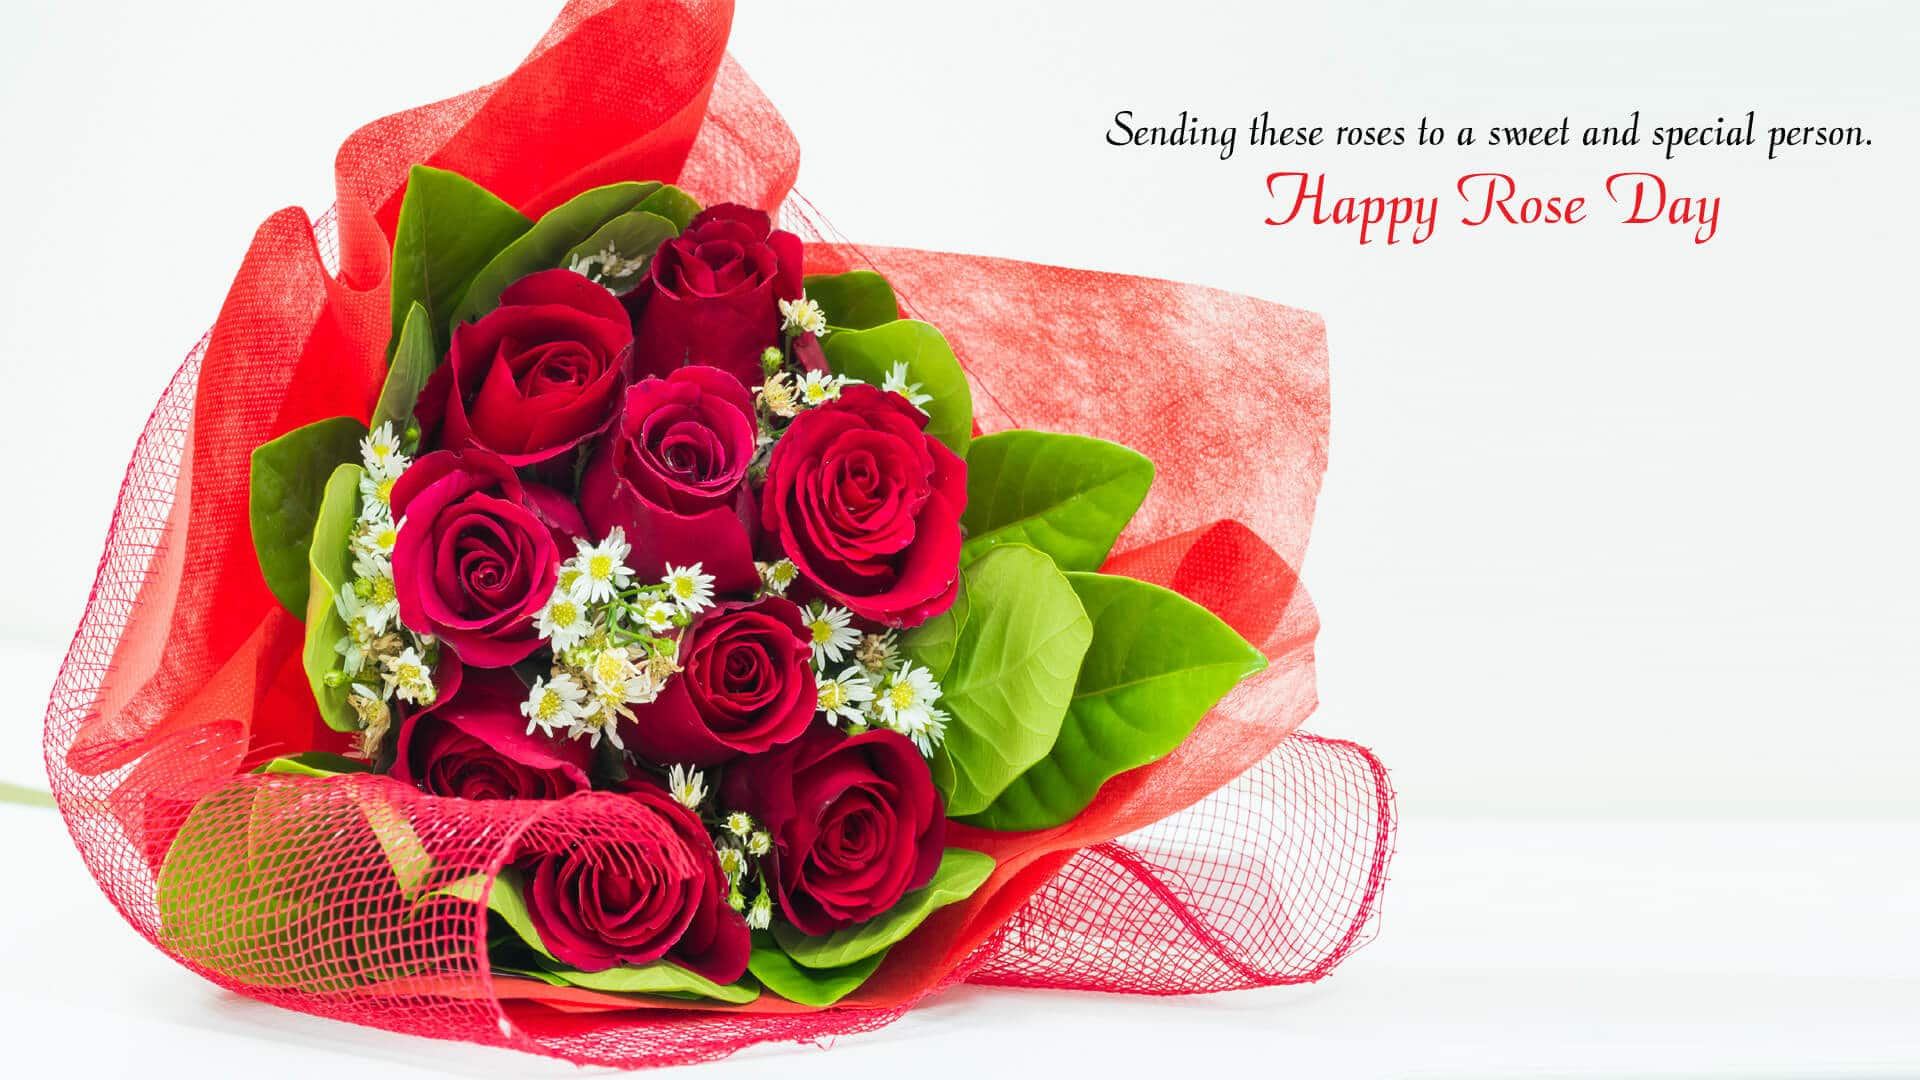 Happy Rose Day 2019 Image,Pictures,Wallpapers in HD